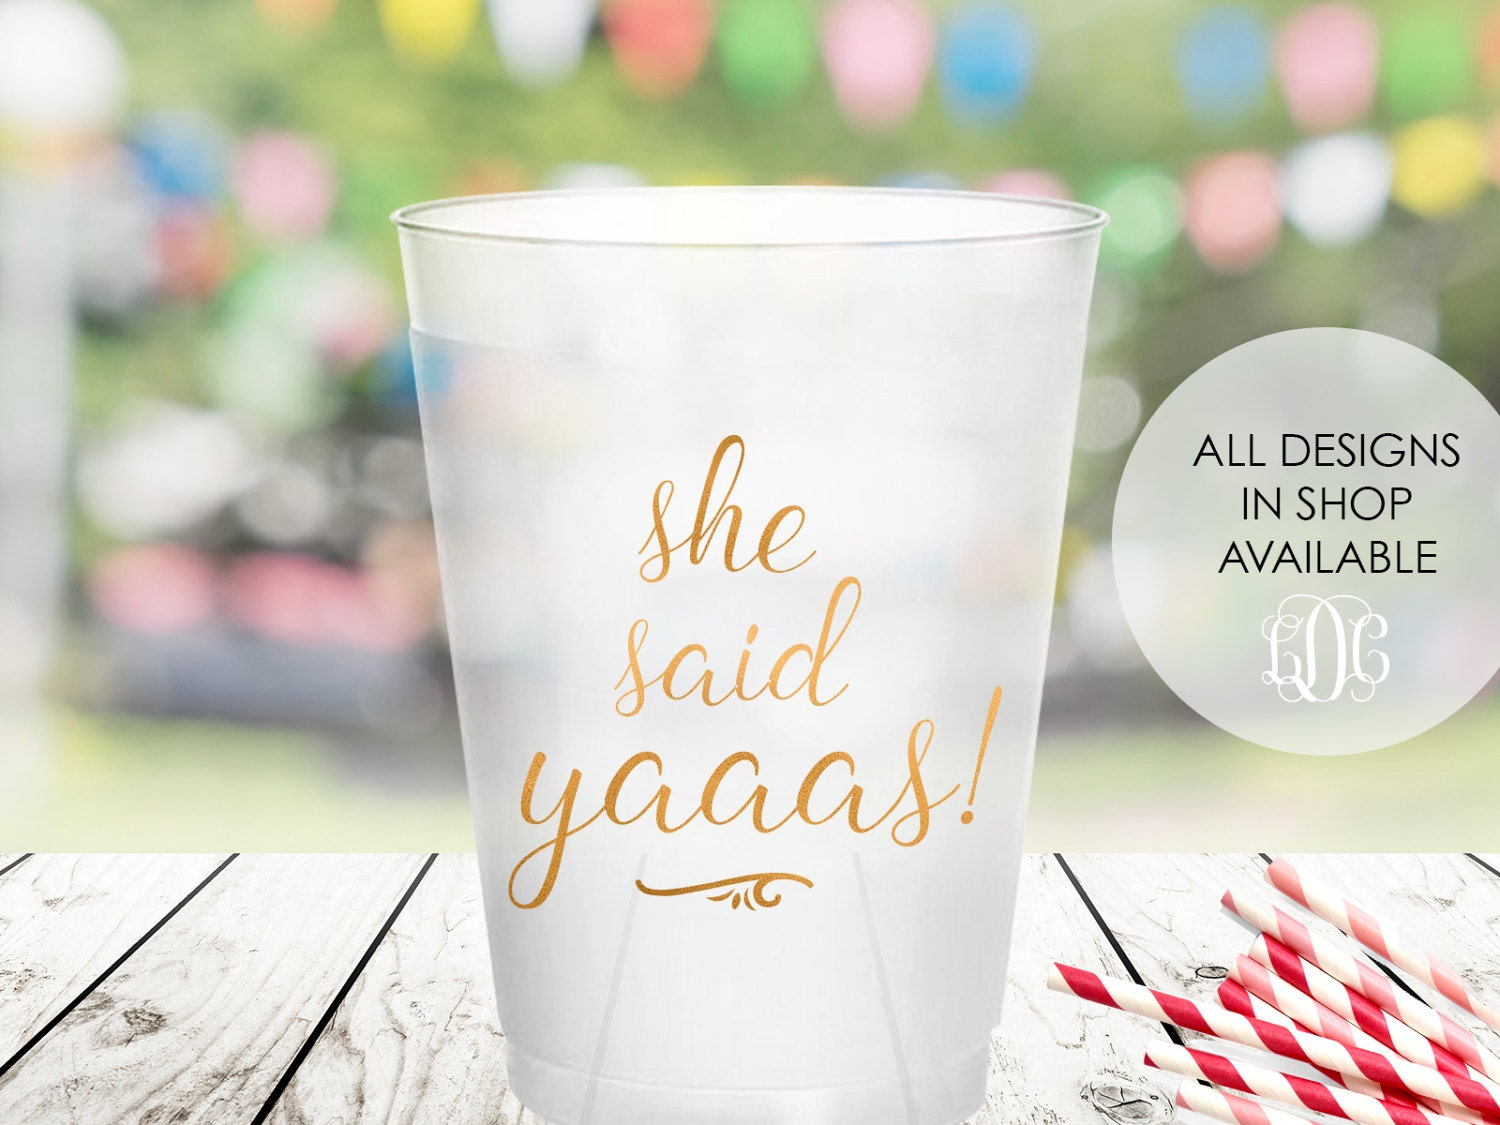 bachelorette party cups bridal shower cup she said yaaas party decorations wedding shower decor cheers cups wedding decorations